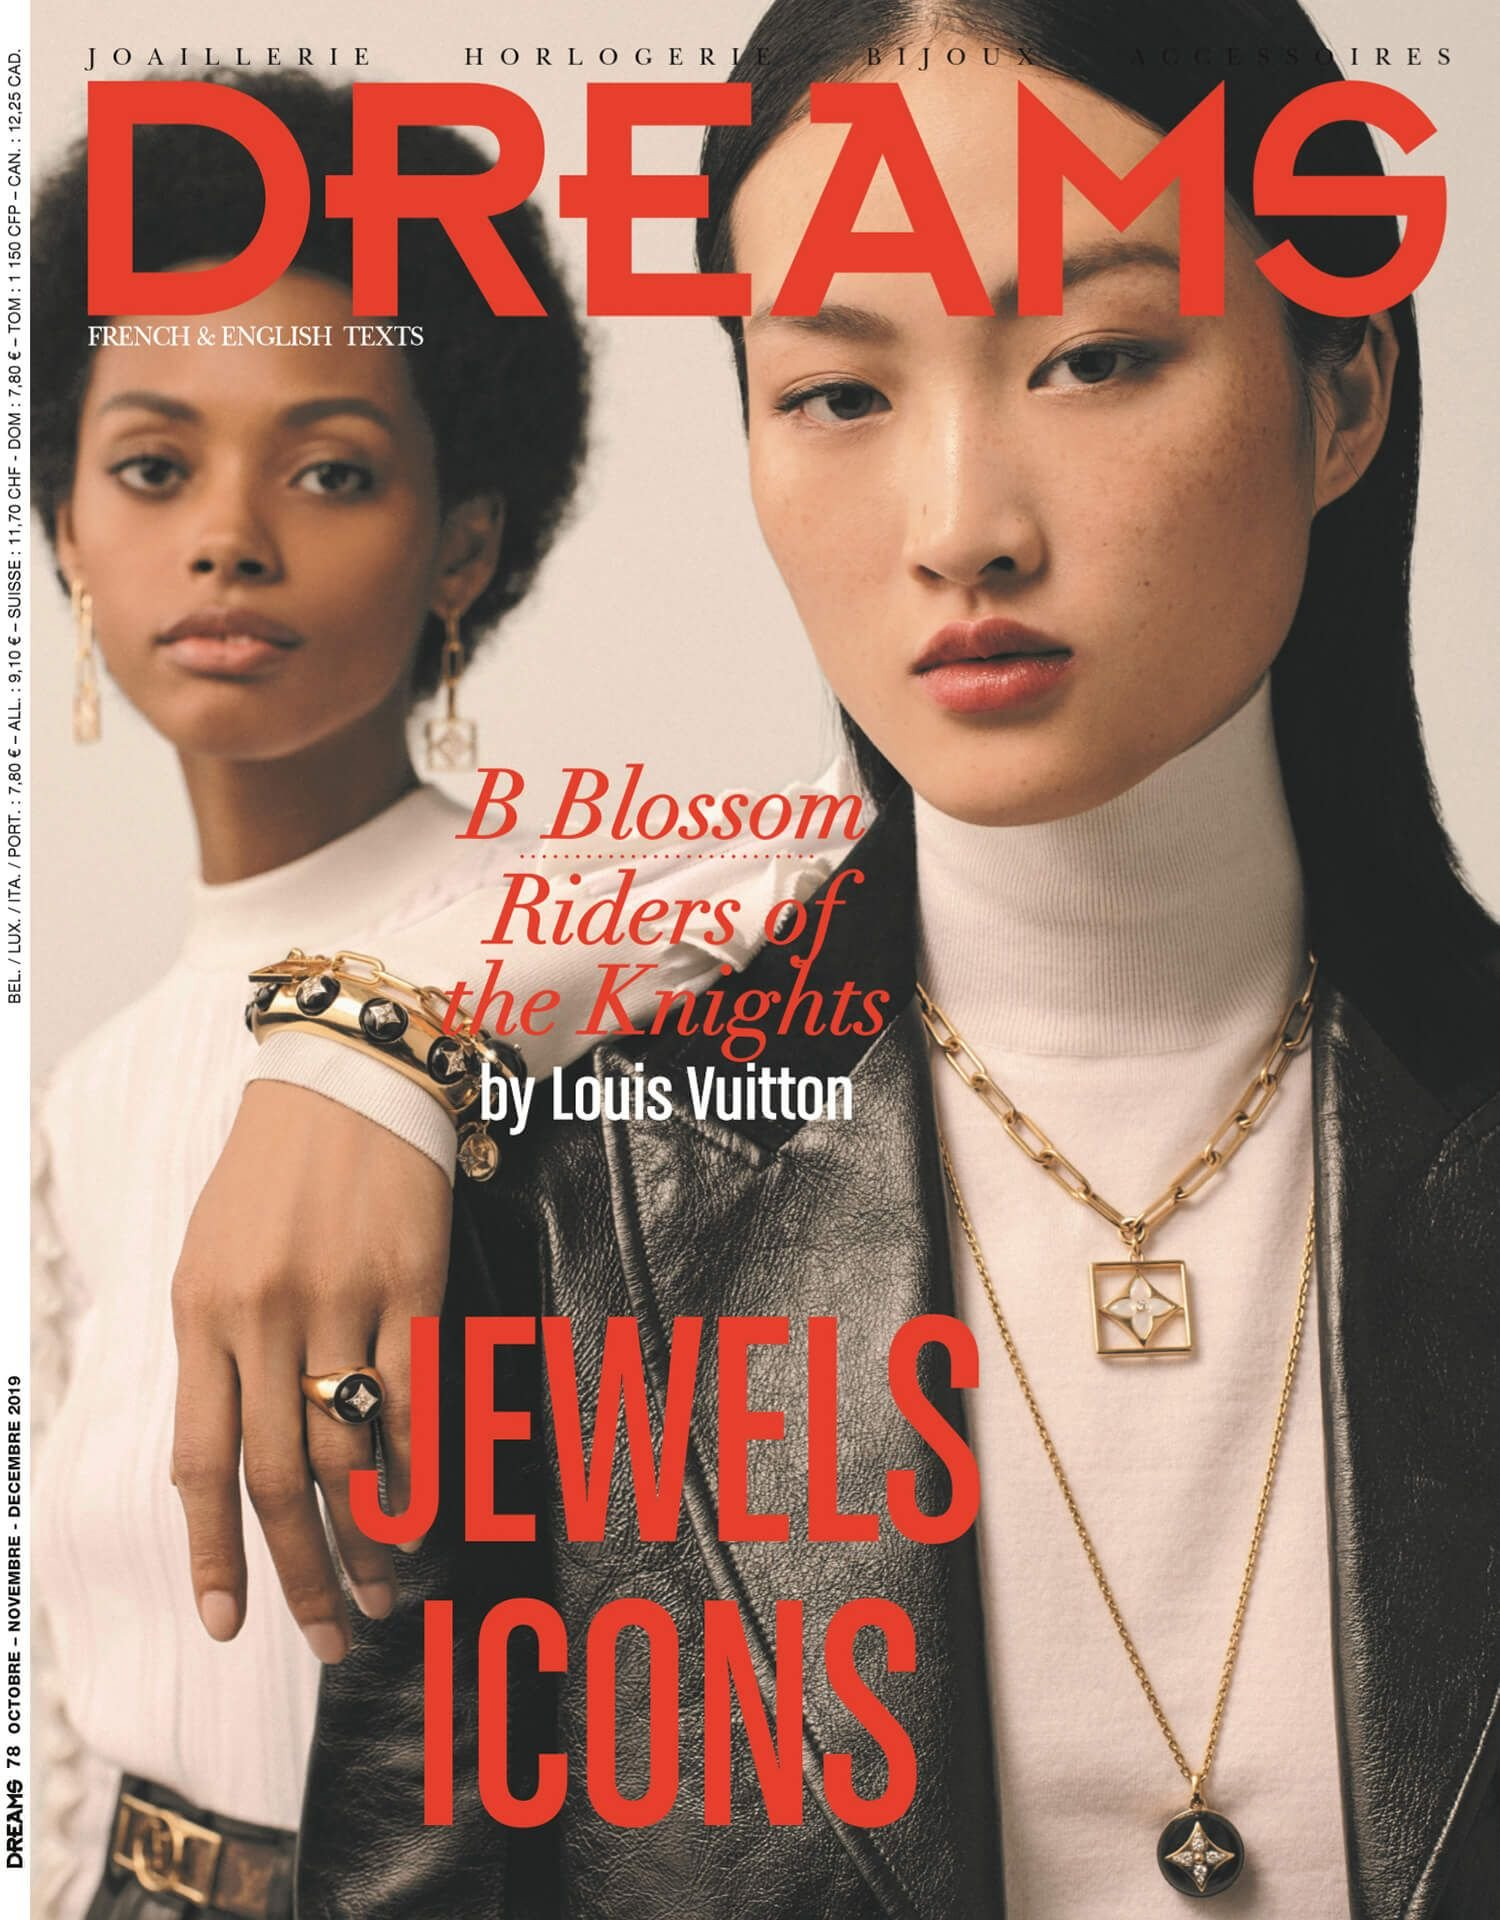 DREAMS Magazine October 2019 dedicates an article to pearls in jewelry